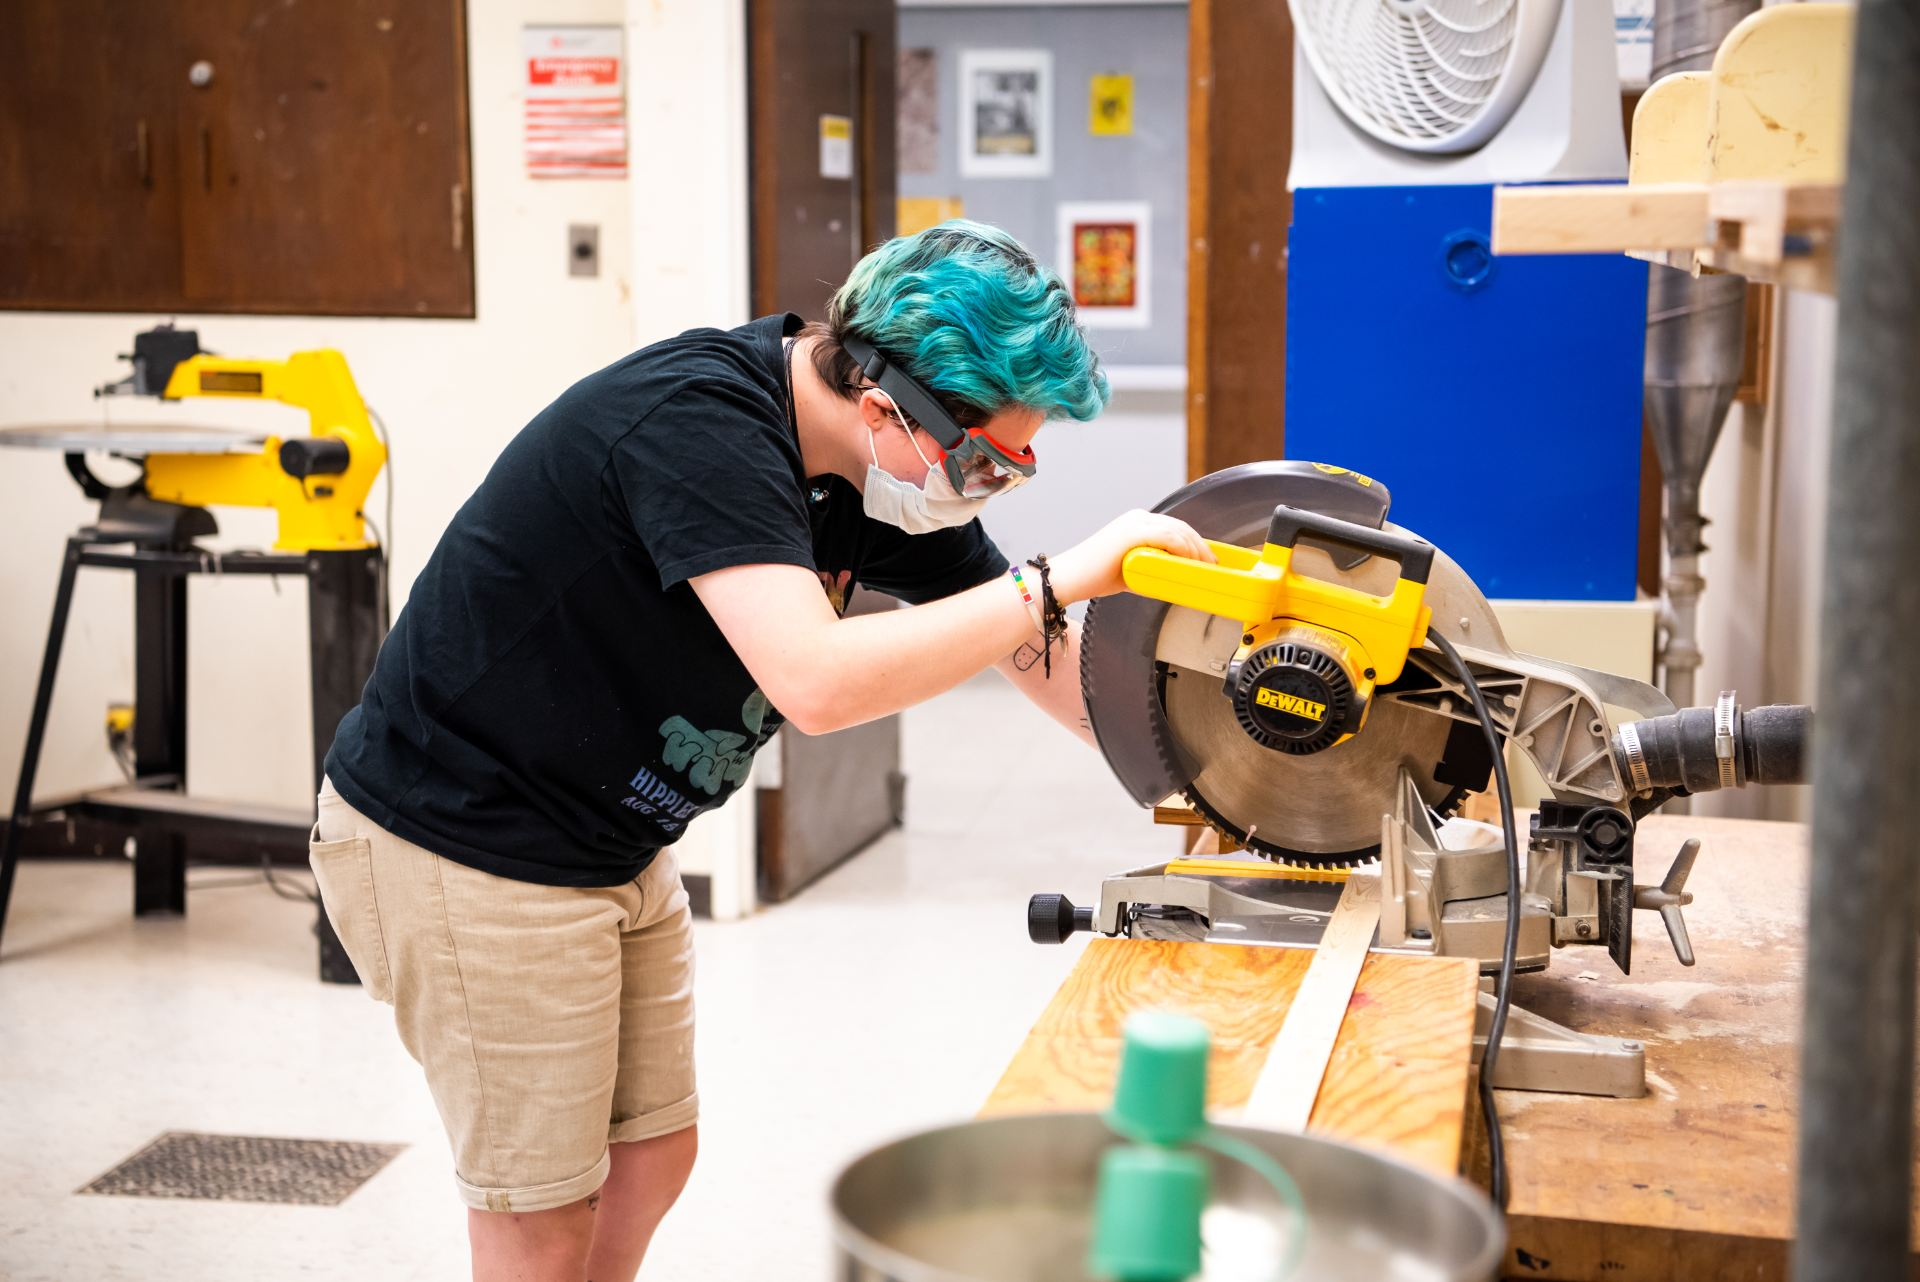 """Studio art major Laney Turner saws wood for their """"Floor to Ceiling"""" project in Professor Gary Justis' Sculpture I class."""